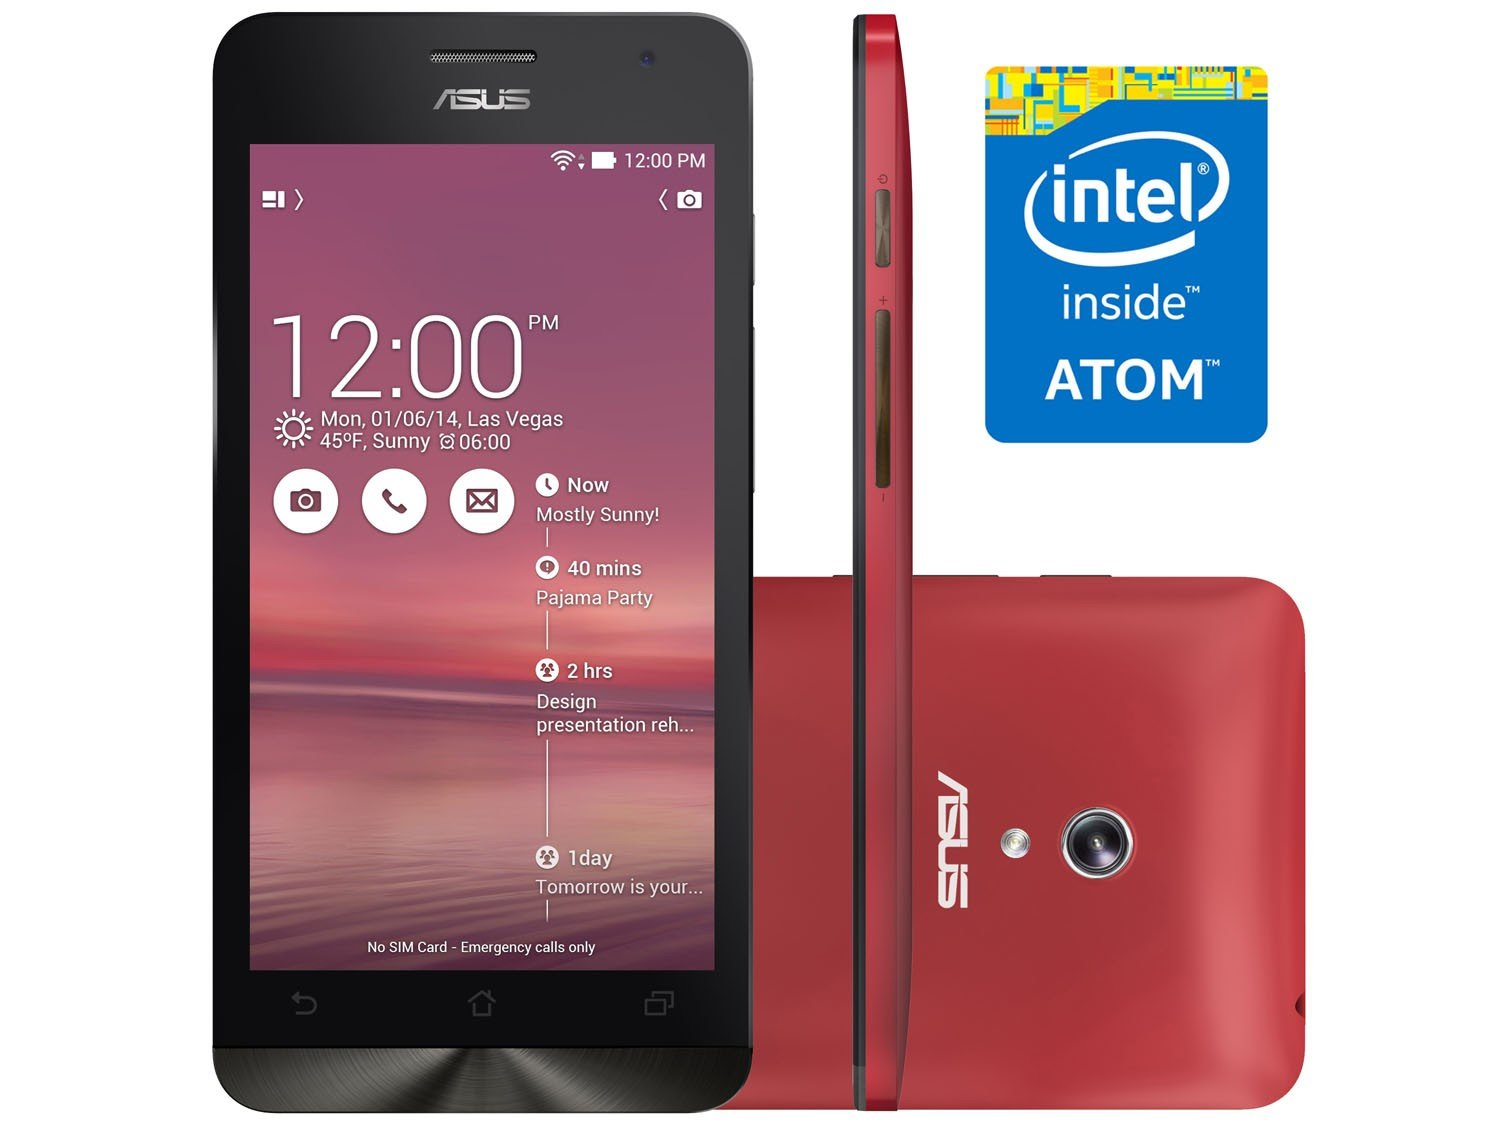 smartphone-asus-zenfone-5-dual-chip-3g-android-4.3-cam.-8mp-tela-5-proc.-dual-core-wi-fi-a-gps